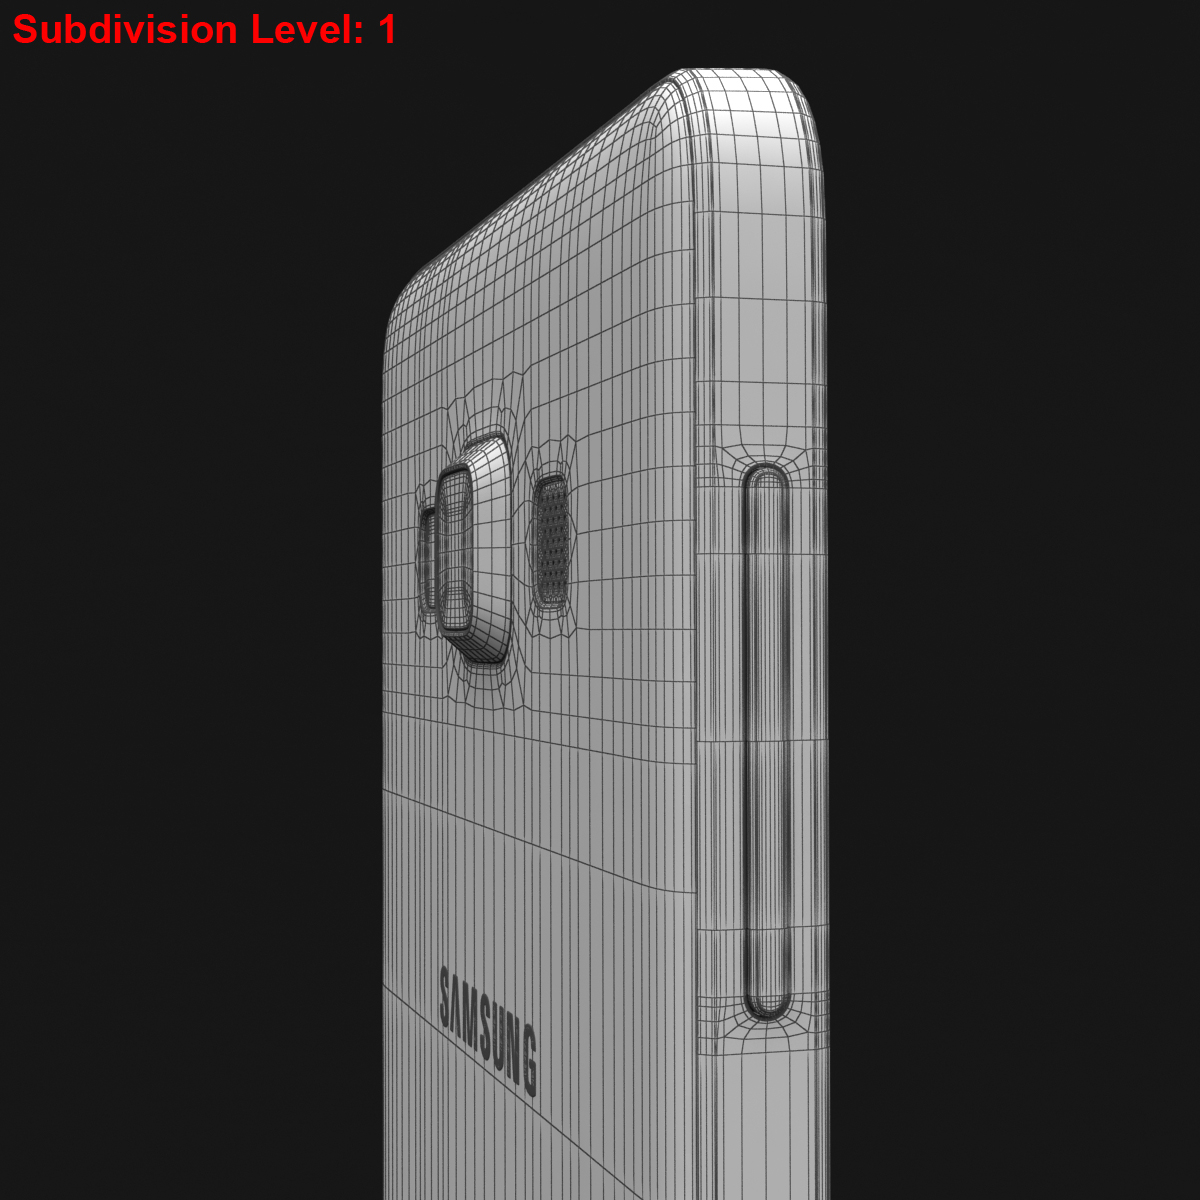 samsung galaxy a3 and a3 duos white 3d model 3ds max fbx c4d obj 206598